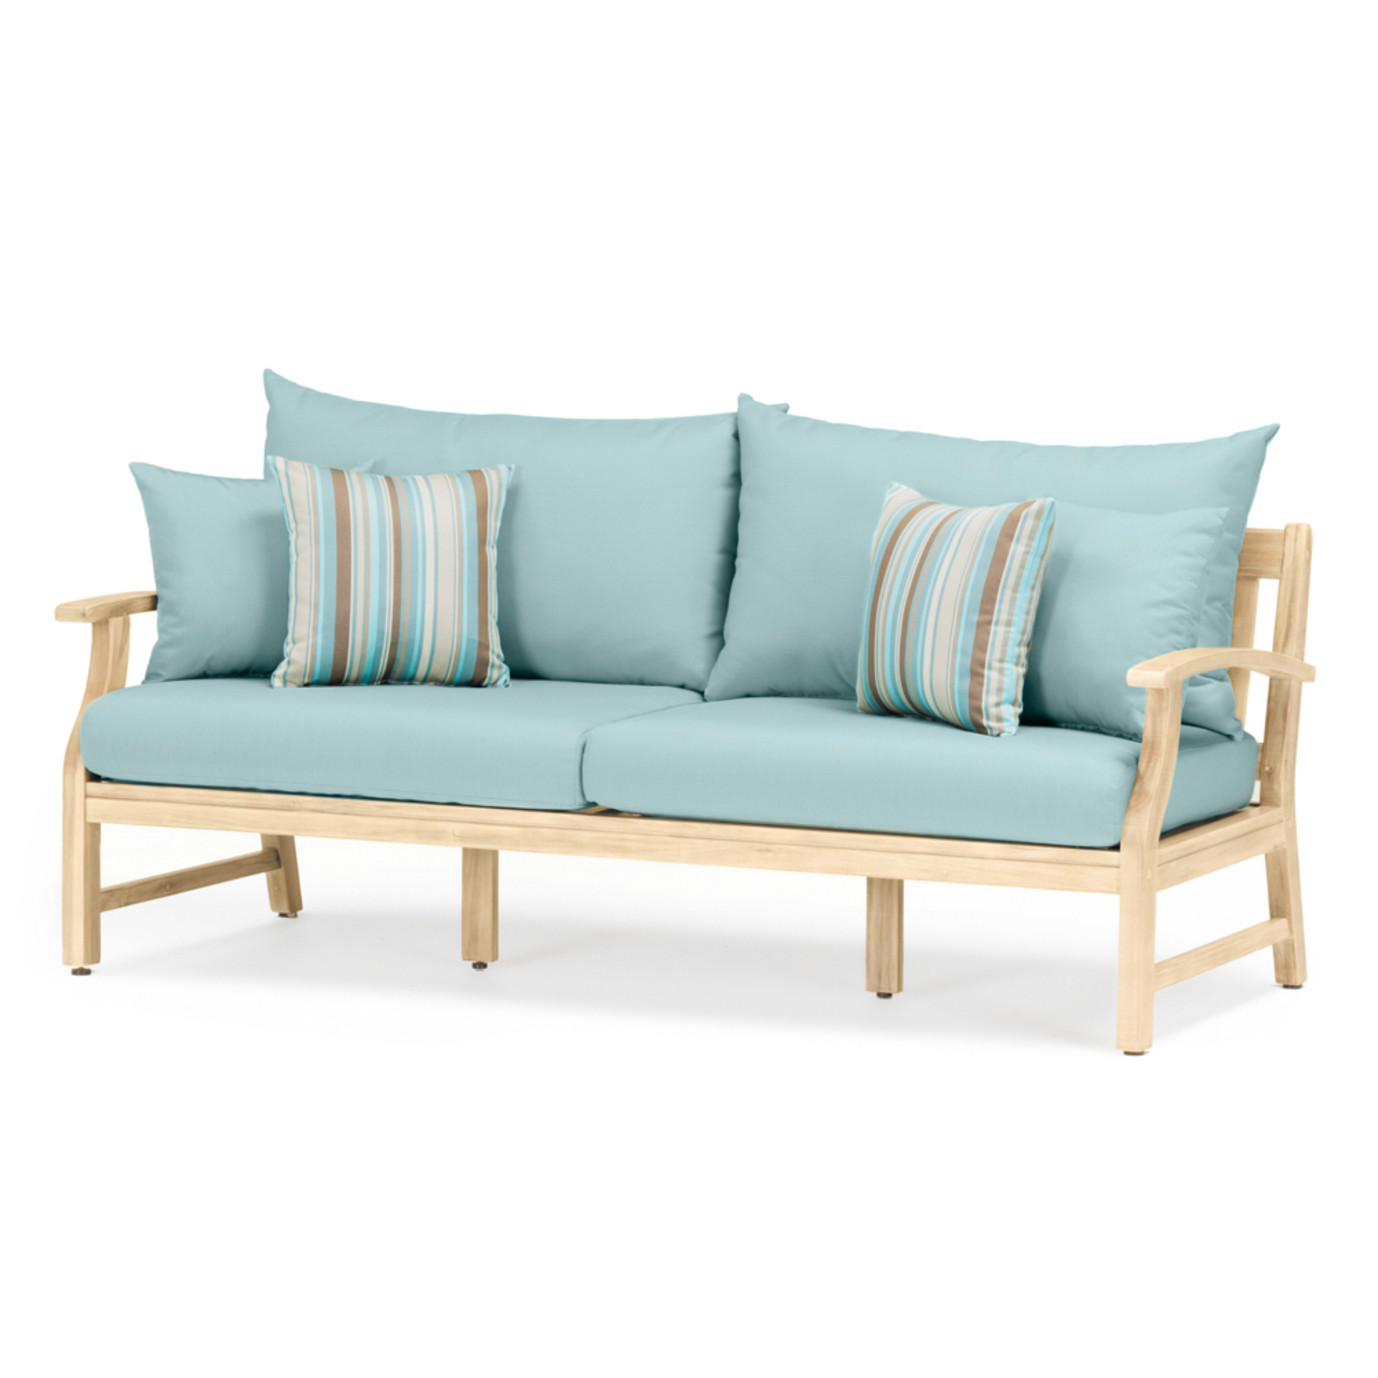 Kooper 4 Piece Outdoor Sofa & Club Chair Set - Bliss Blue